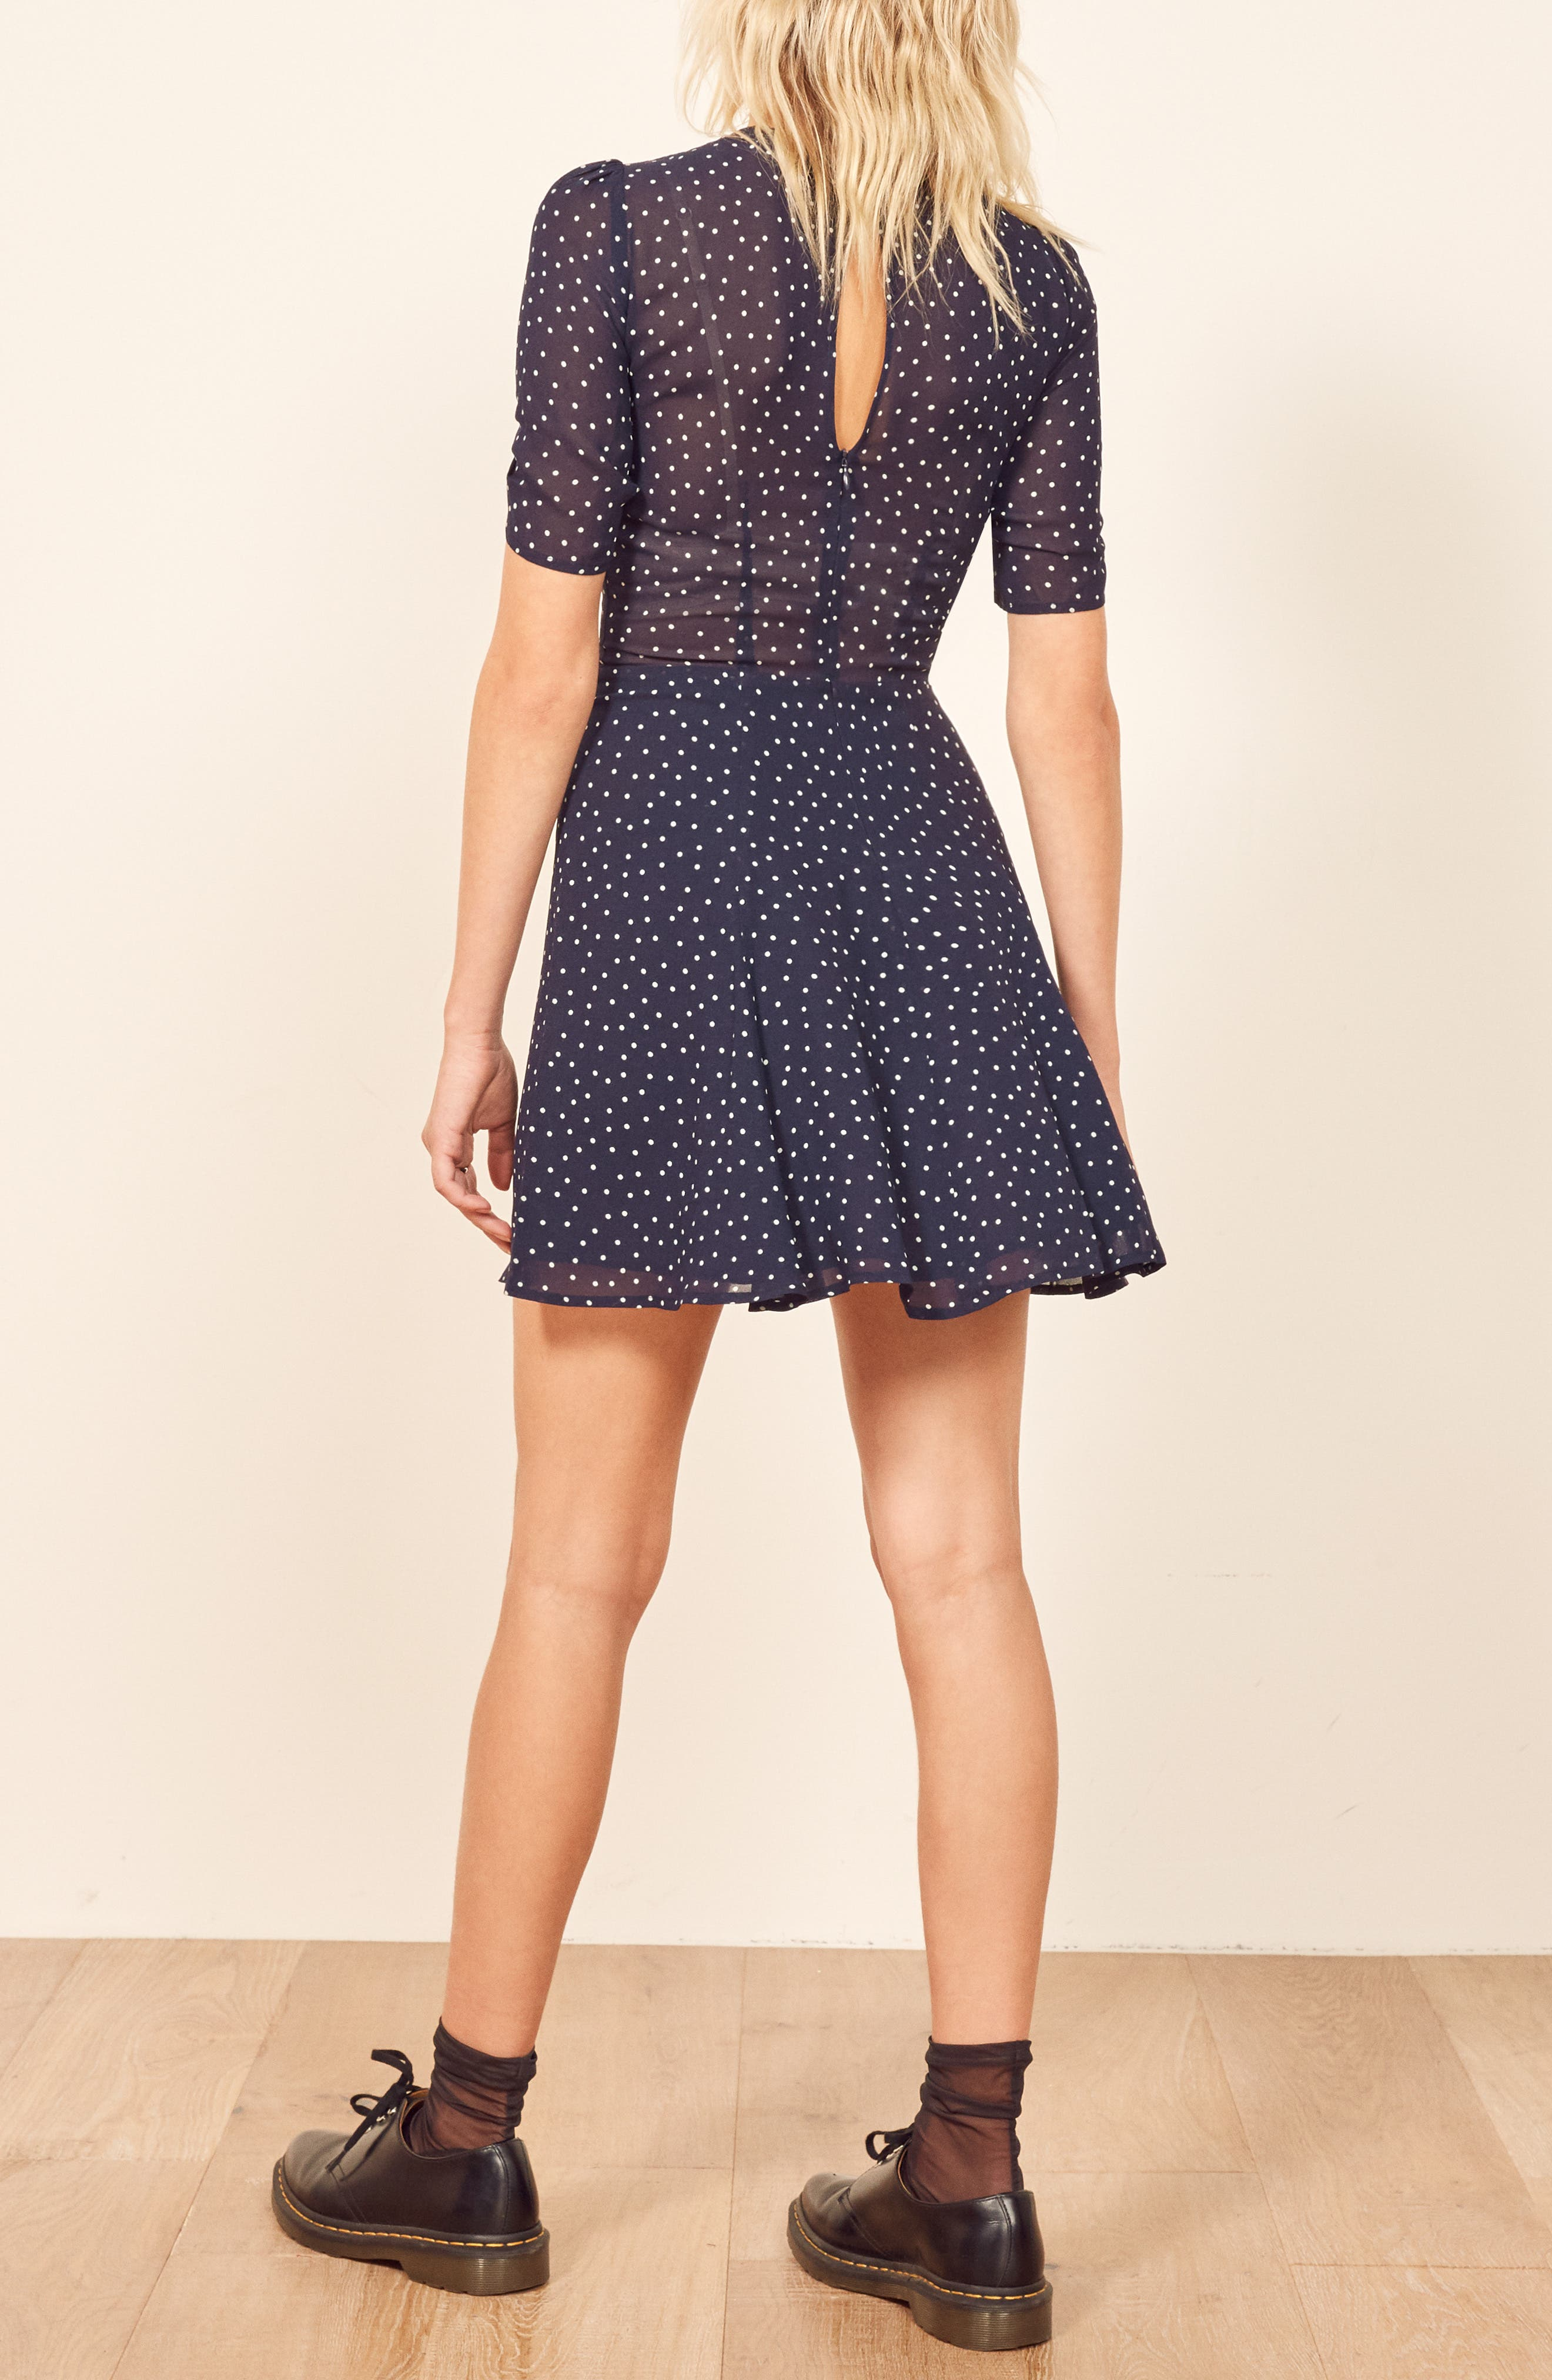 REFORMATION, Gracie Ruched Sleeve Minidress, Alternate thumbnail 4, color, DOTSIE